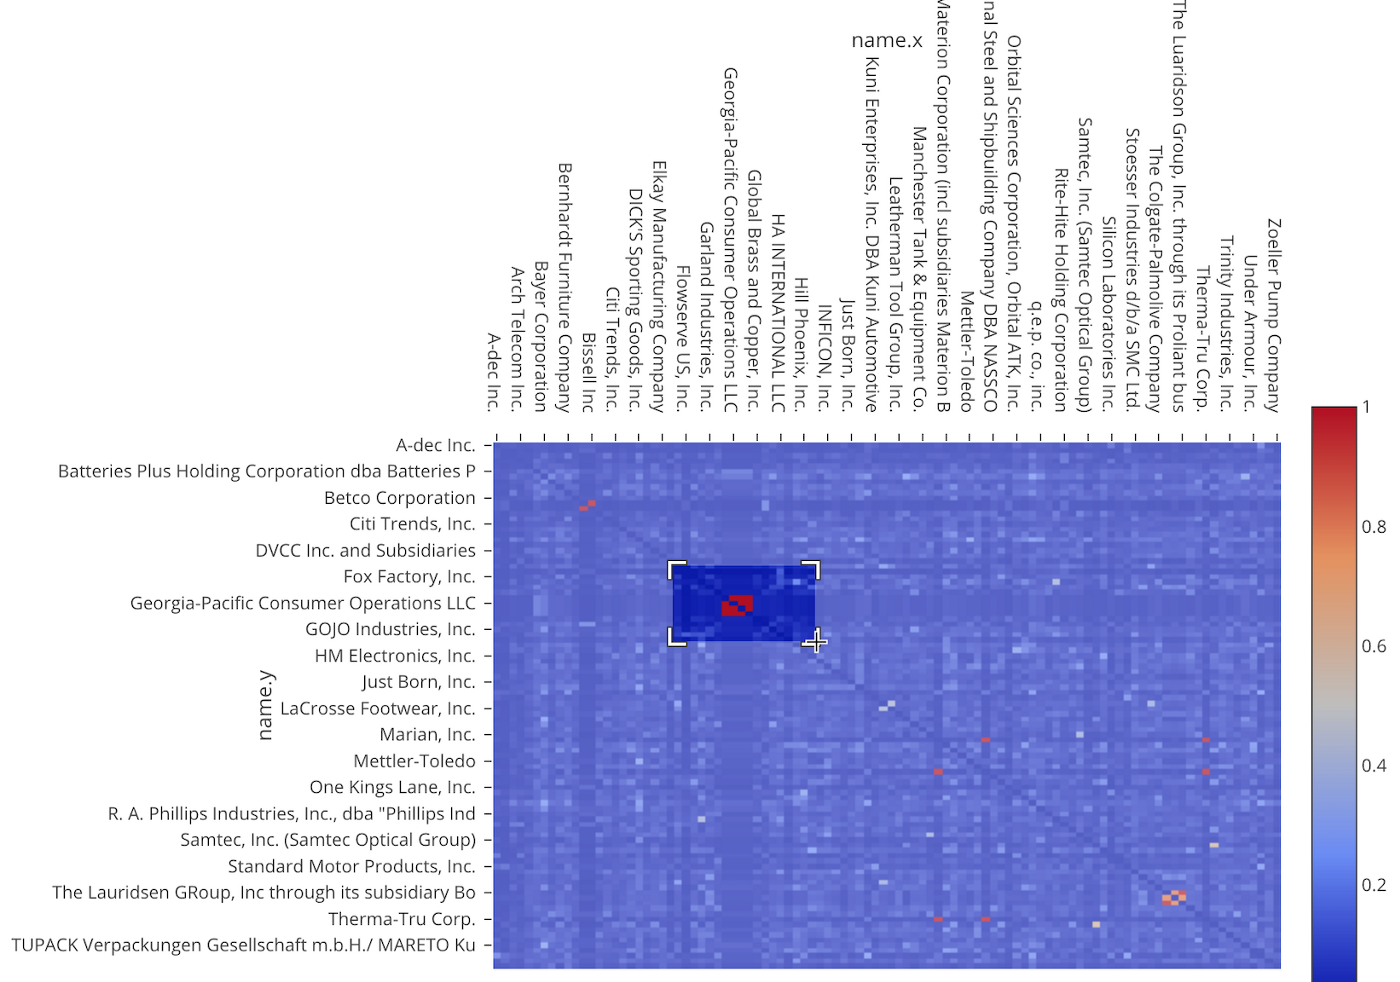 Demystifying Text Analytics Part 3 — Finding Similar Documents with